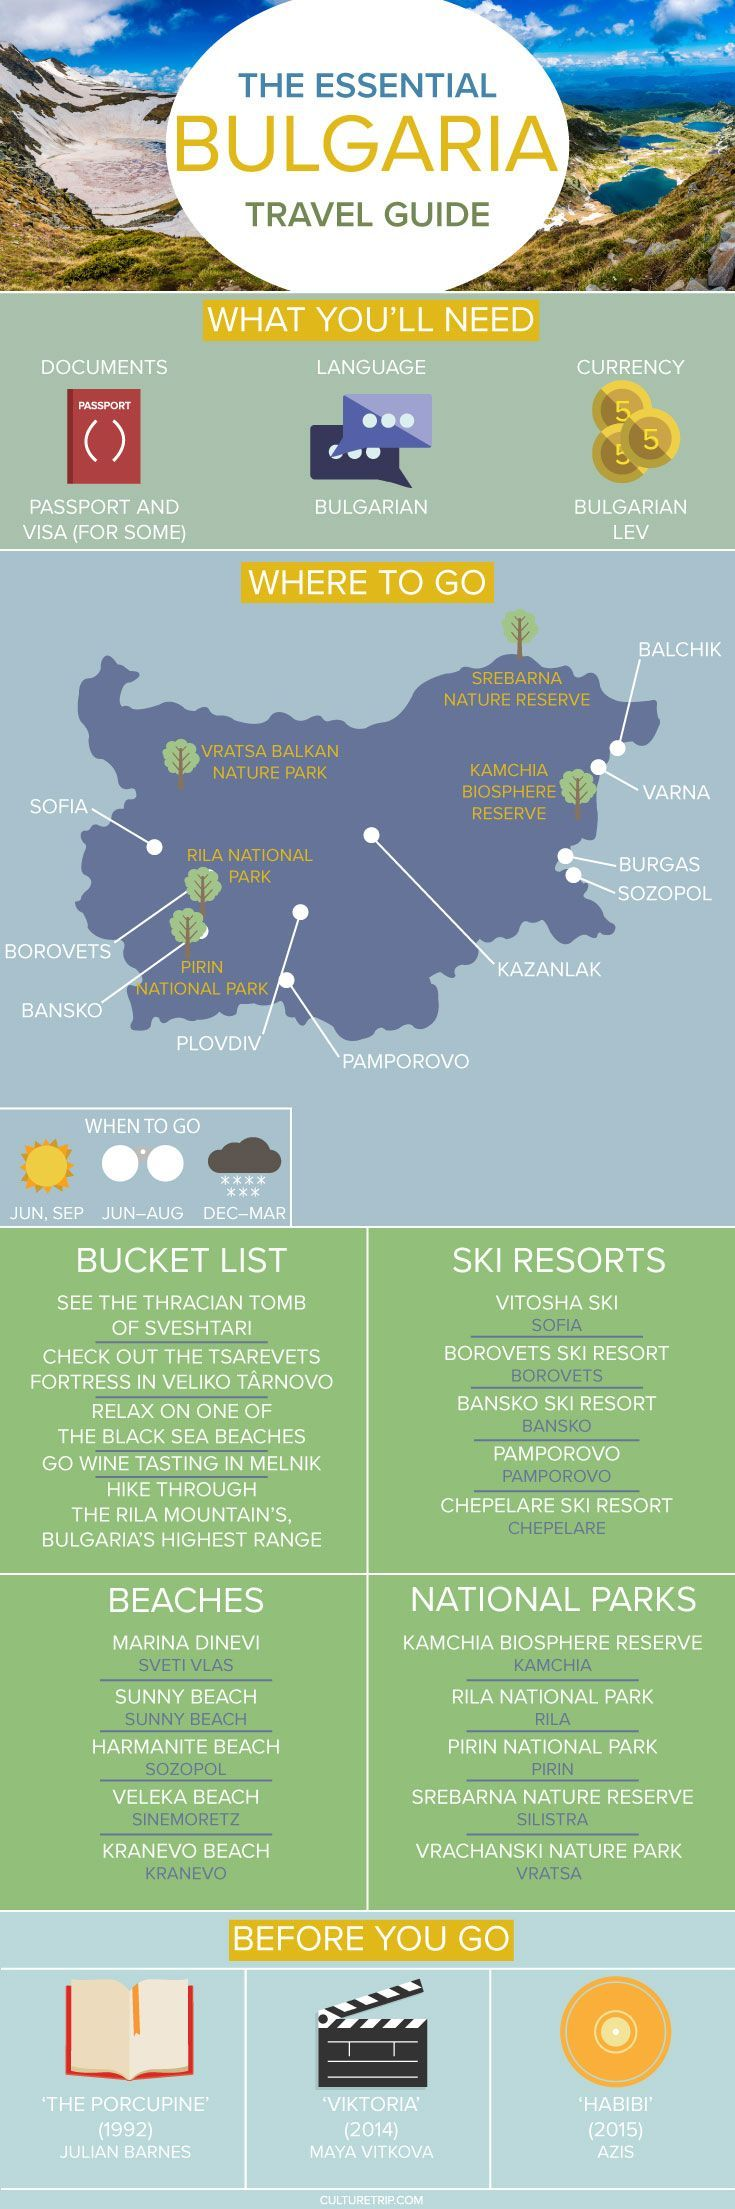 The Essential Travel Guide to Bulgaria (Infographic)|Pinterest: @theculturetrip